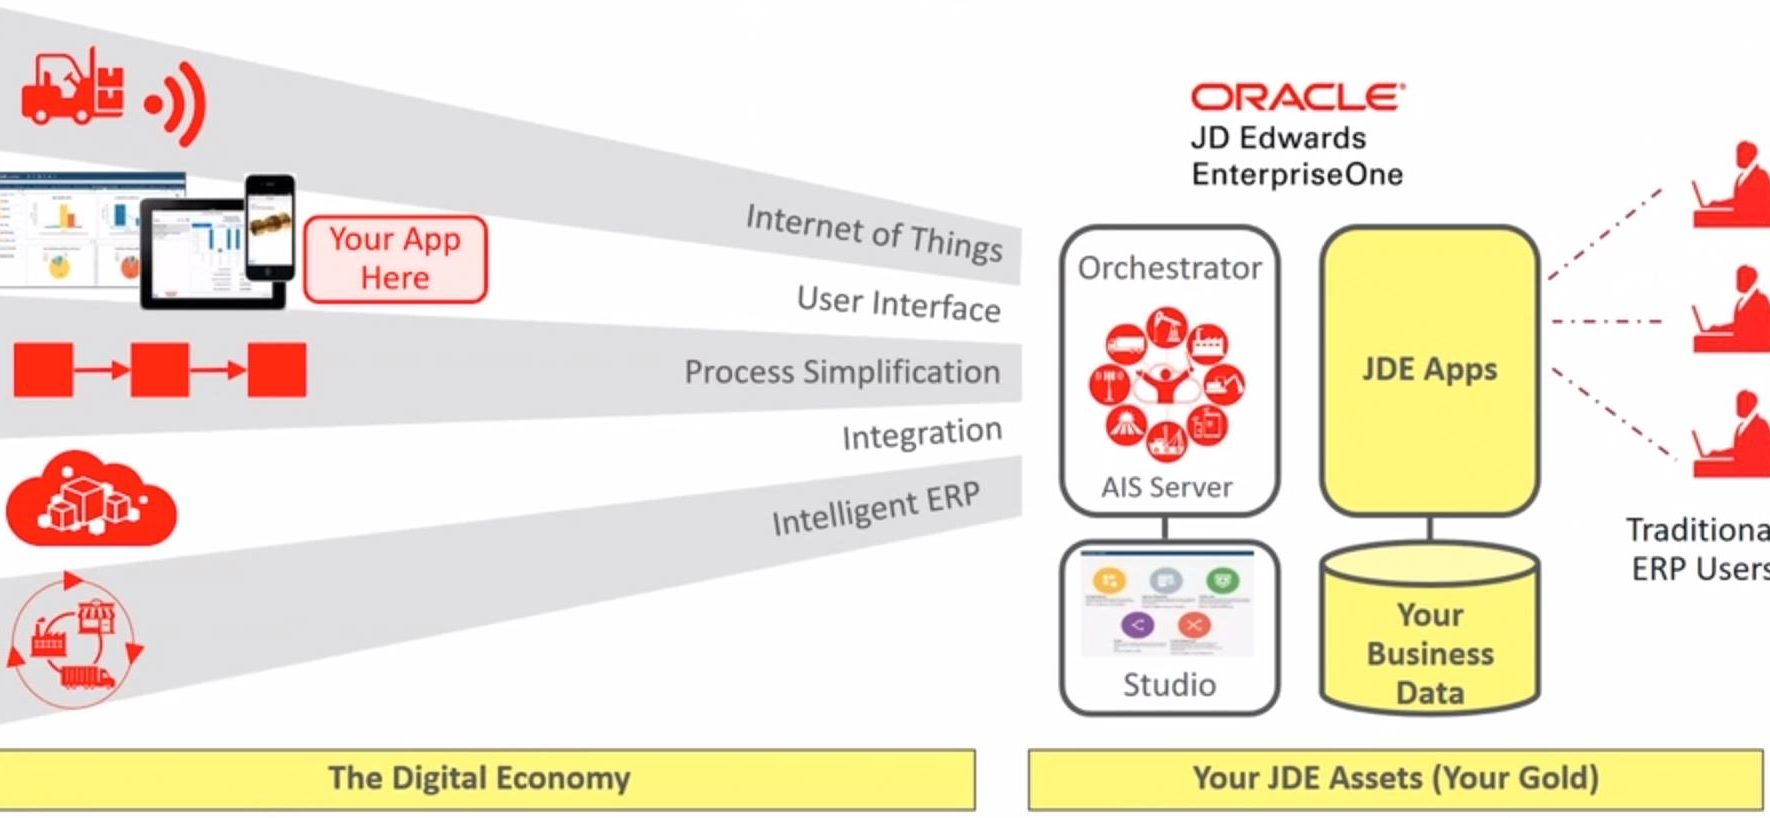 JD Edwards E1 Orchestrator Graphic